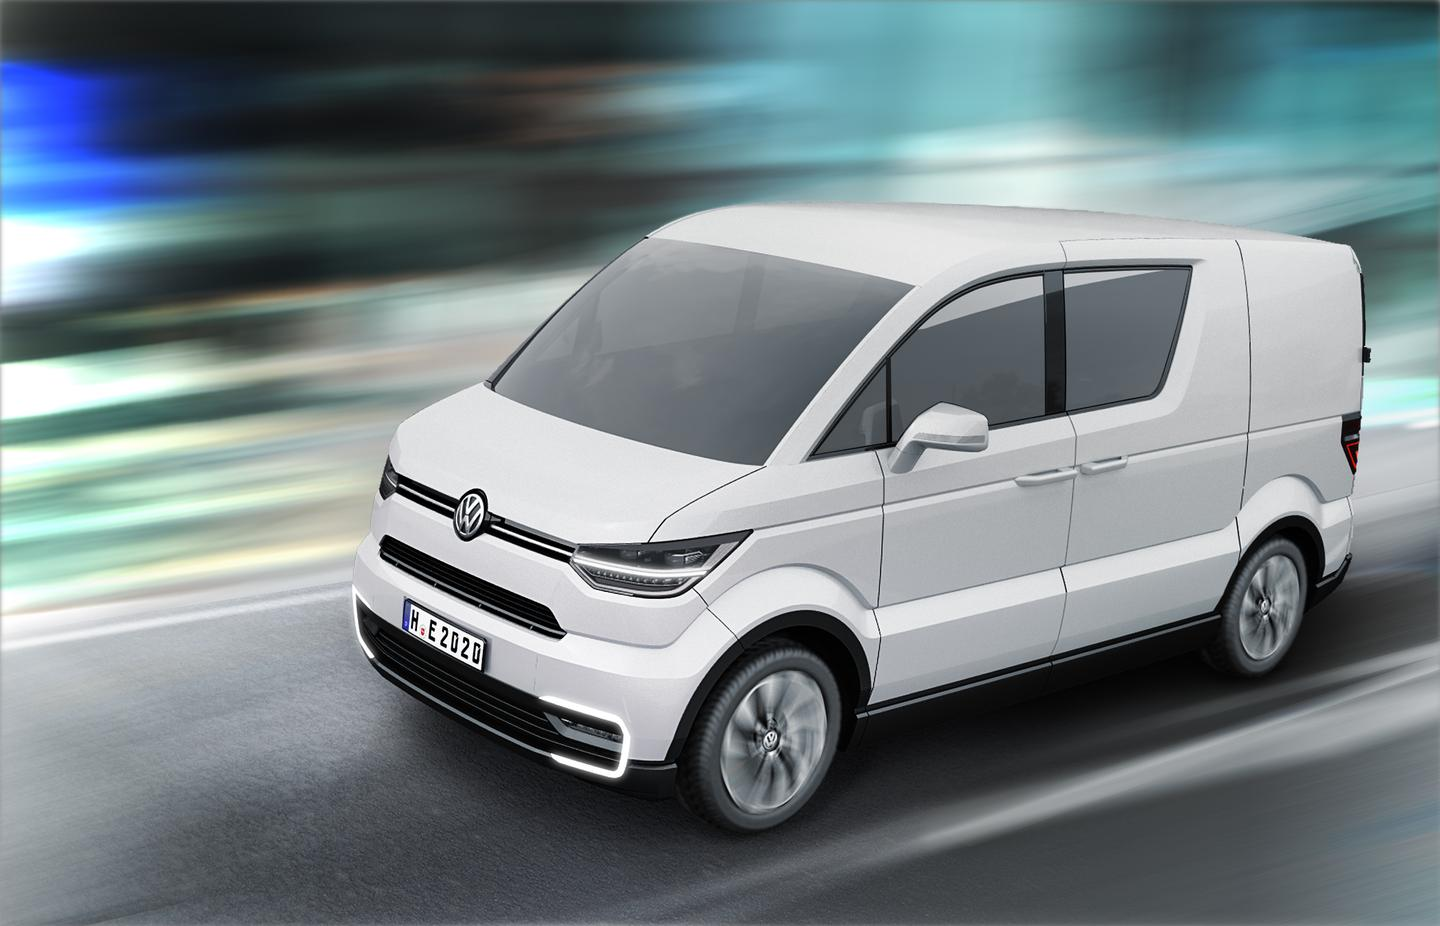 The e-Co-Motion concept from Volkswagen Commercial Vehicles is a zero-emission city delivery van